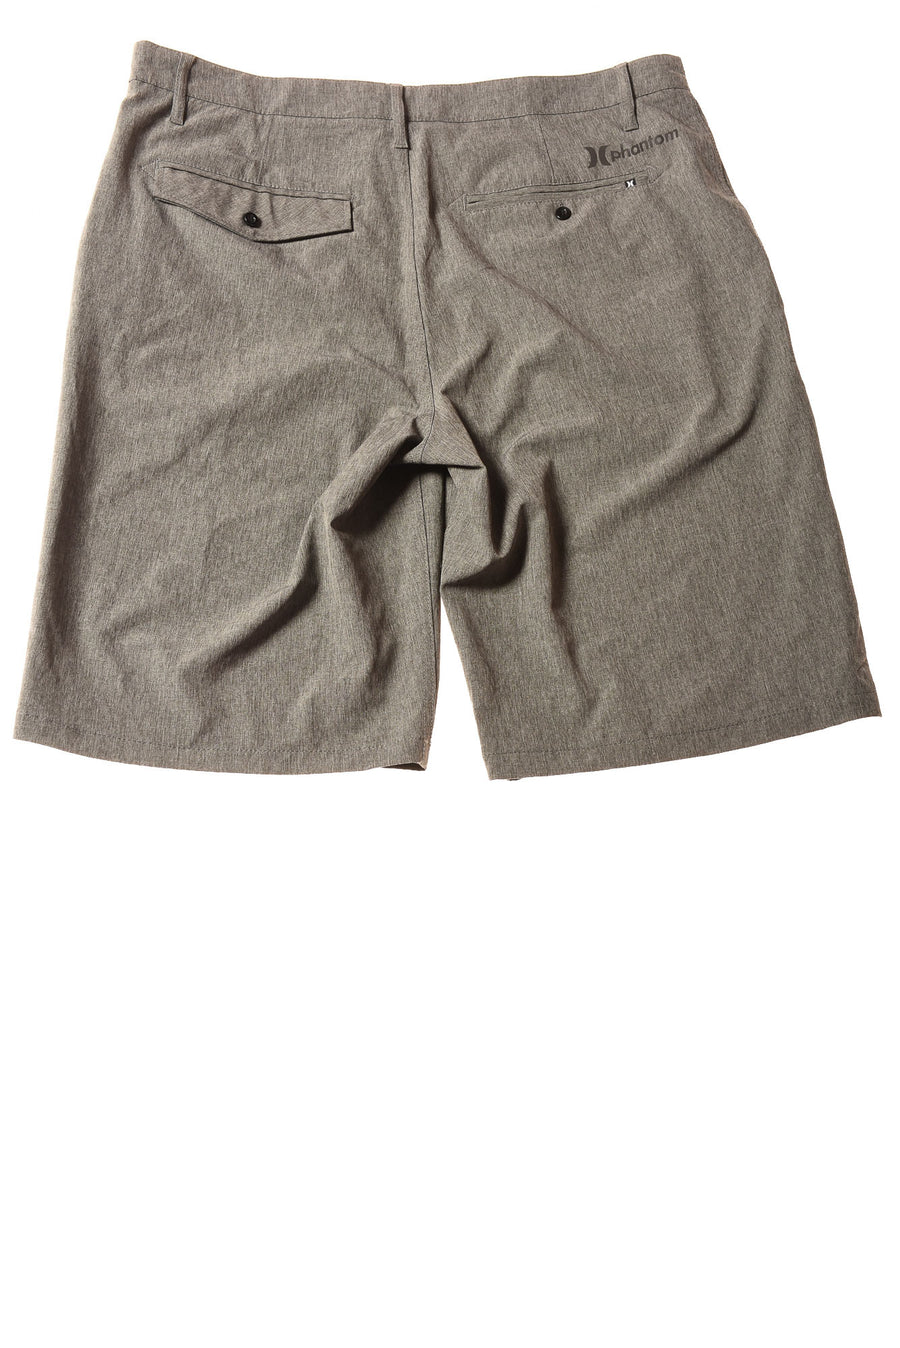 USED Hurley Men's Shorts 32 Gray